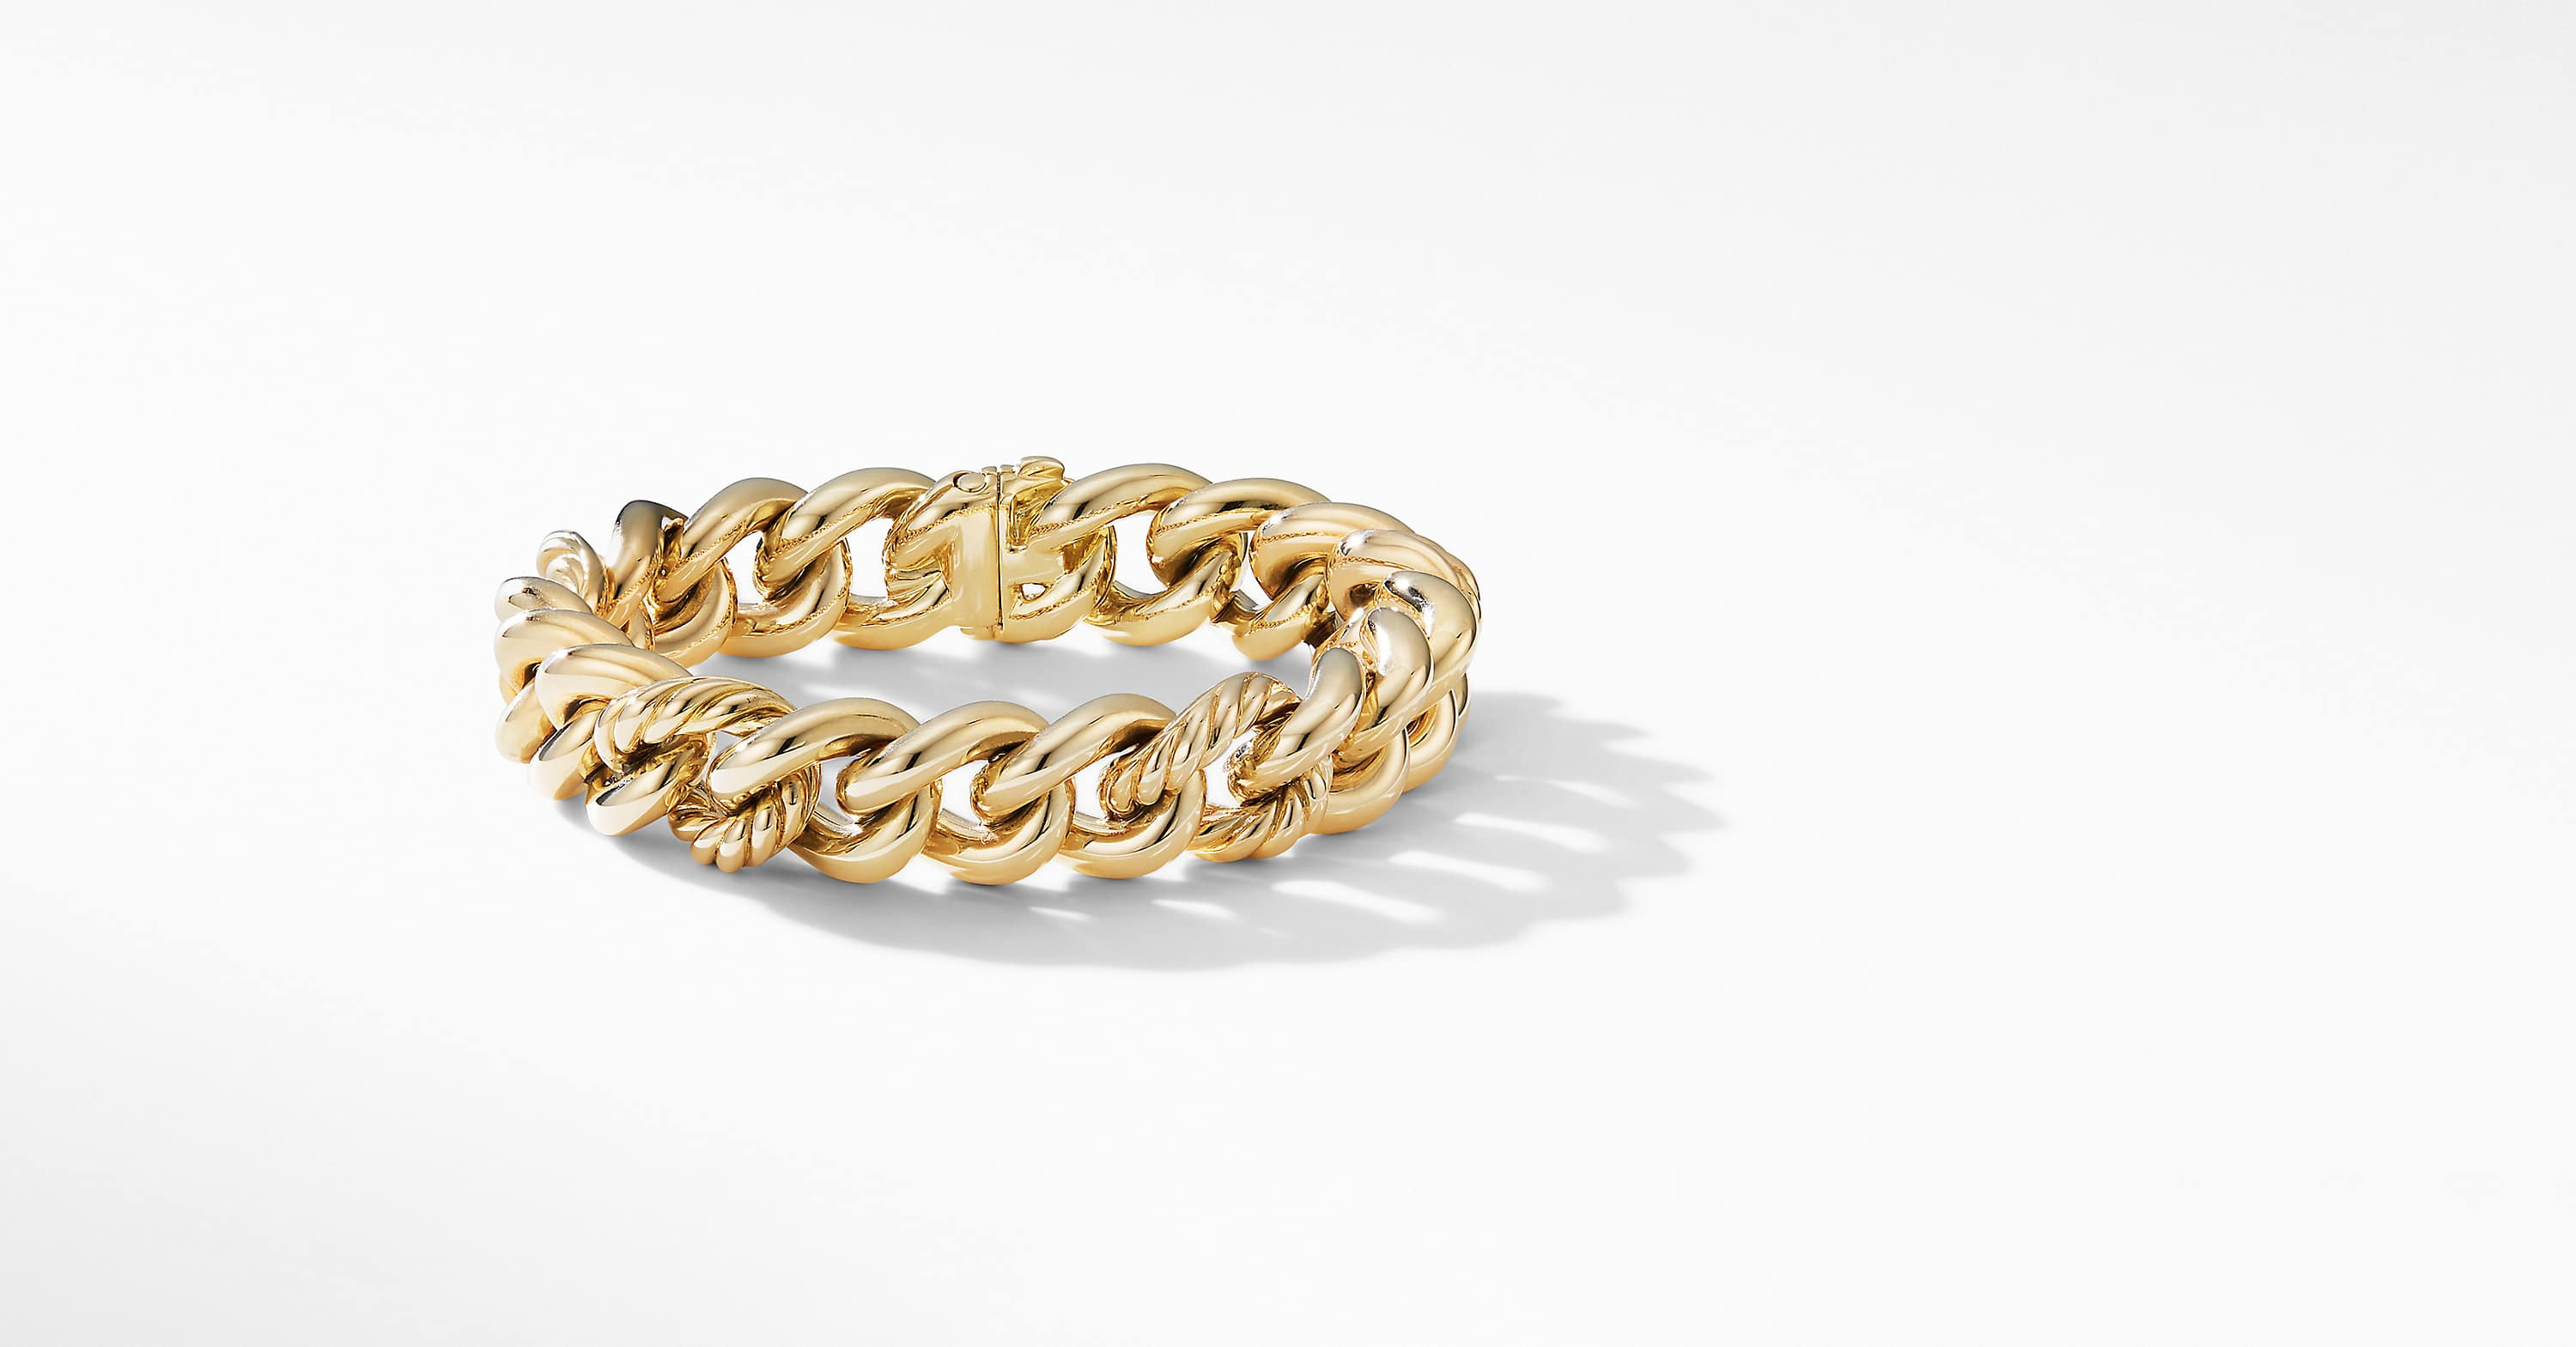 Curb Chain Bracelet in 18K Yellow Gold, 13.5mm